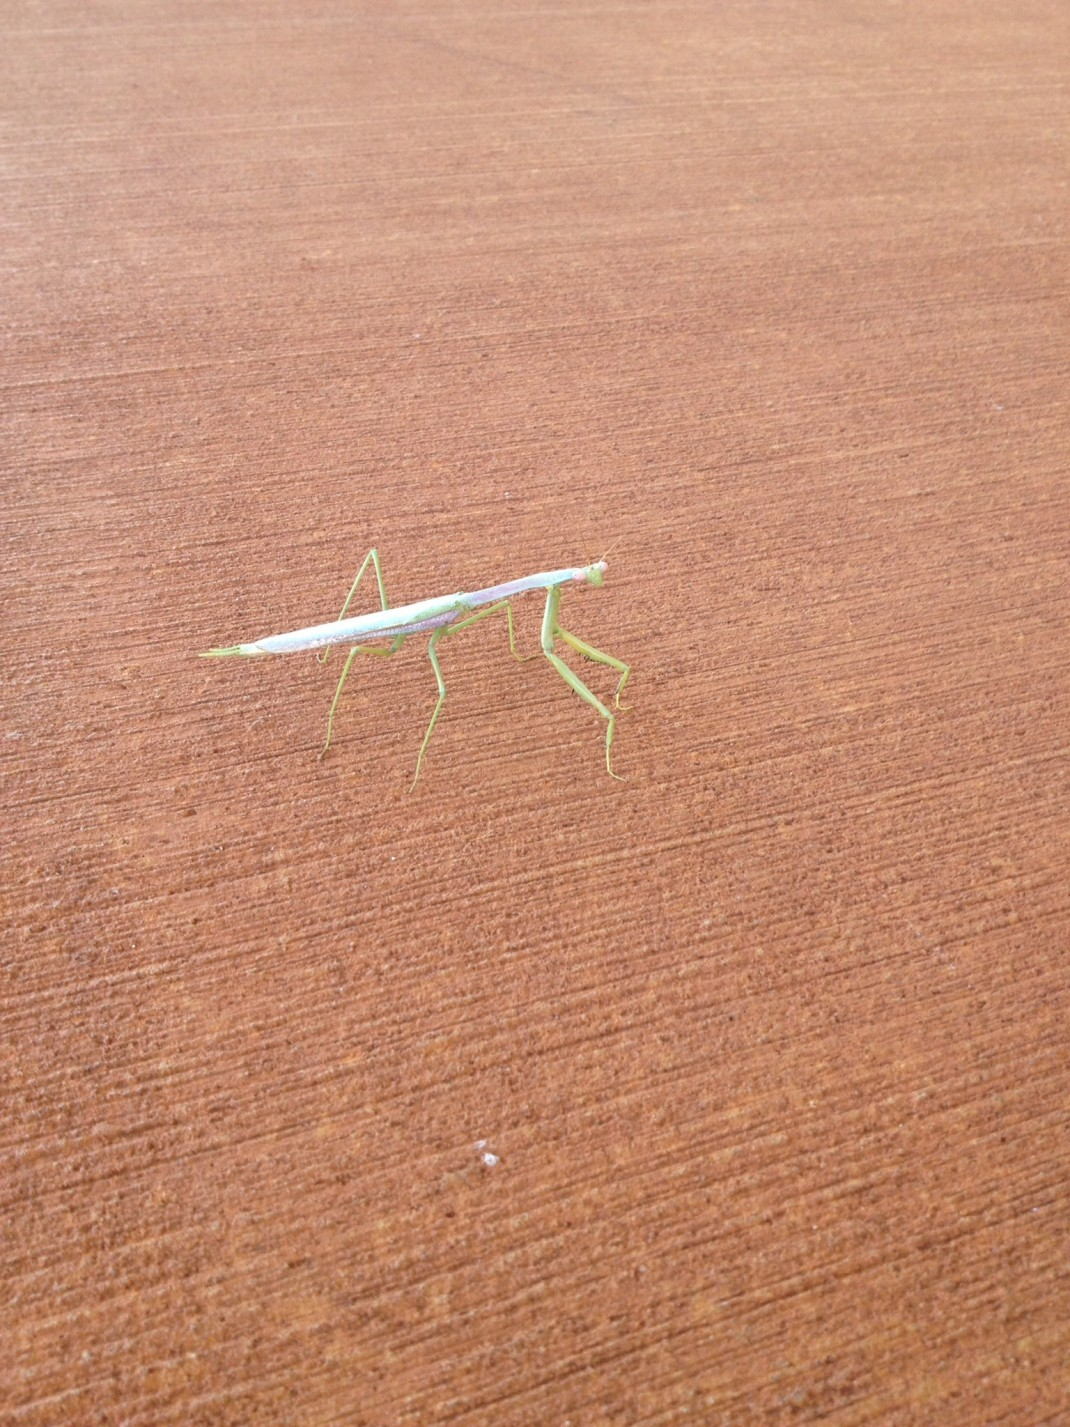 Picture of a Praying Mantis, Australia